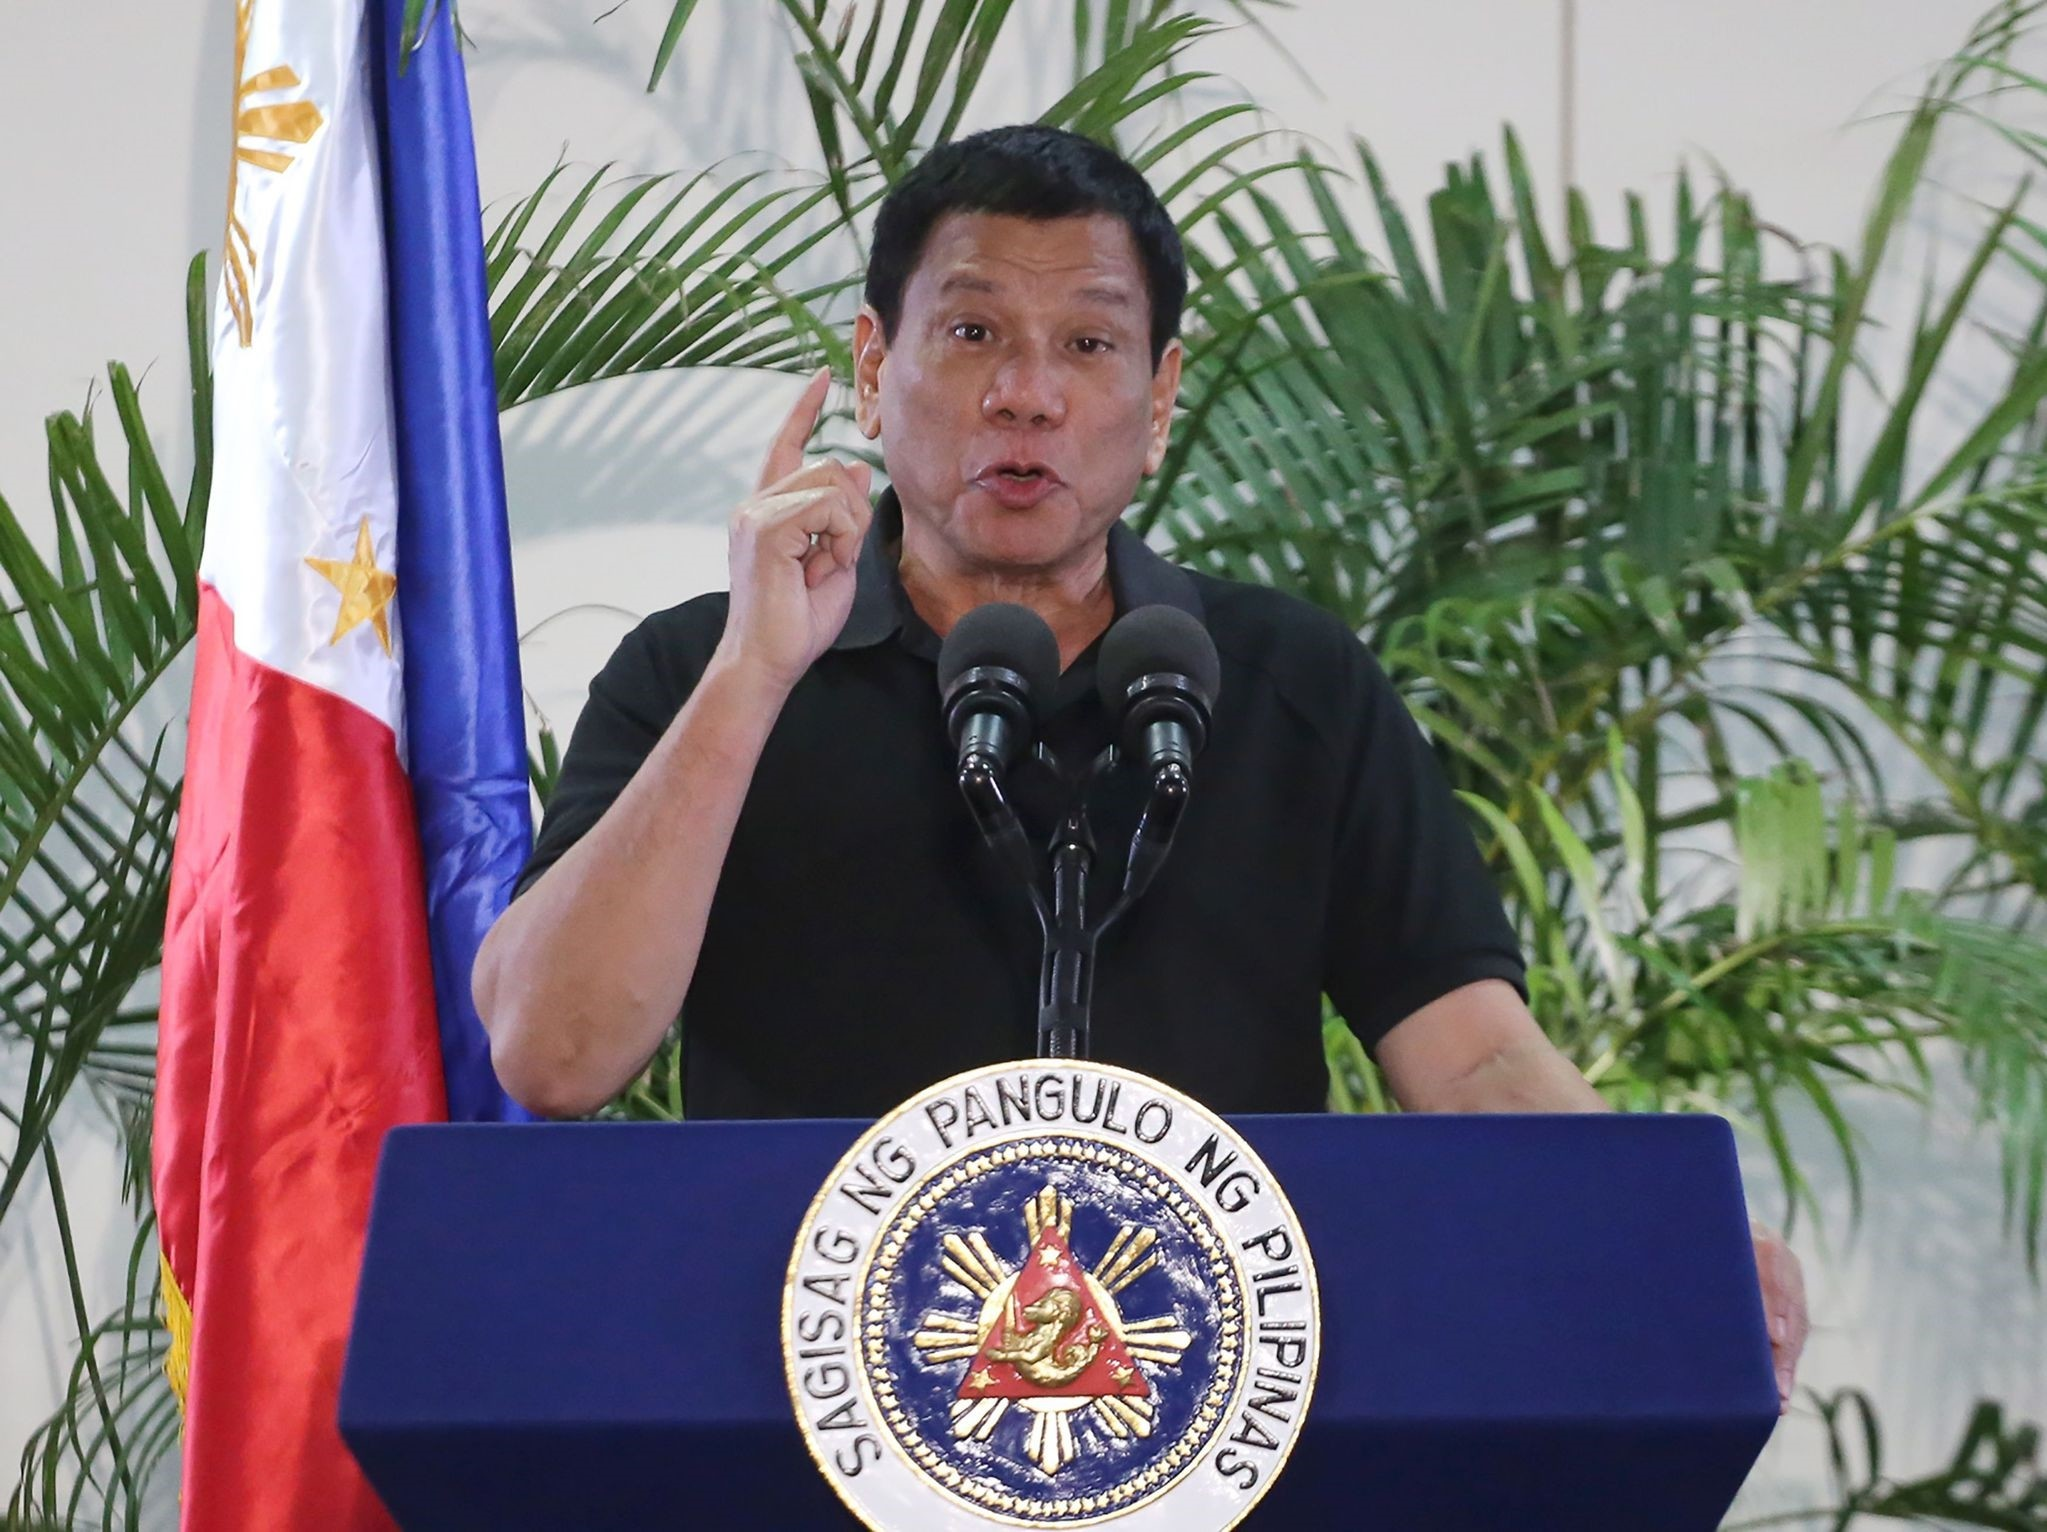 Philippines President Rodrigo Duterte delivers a speech at the Davao international airport terminal building early on September 30, 2016, shortly after arriving from an official visit to Vietnam. (AFP Photo)